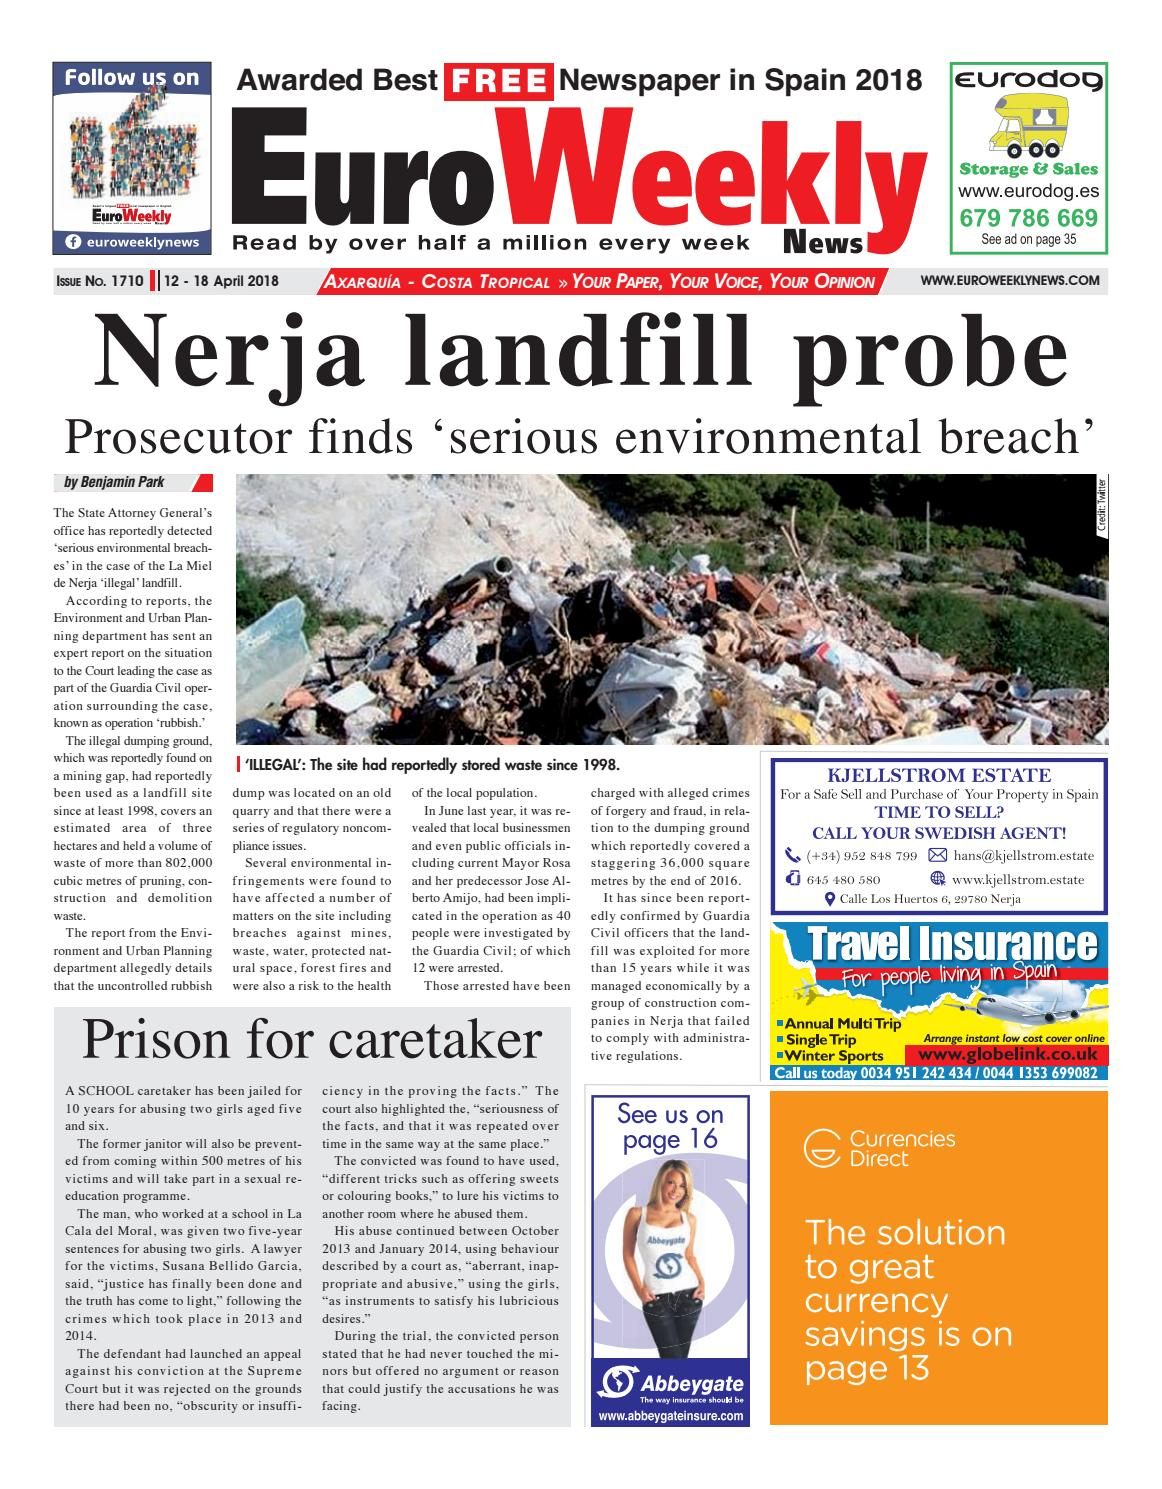 Euro Weekly News - Axarquia 12 - 18 April 2018 Issue 1710 by Euro ...